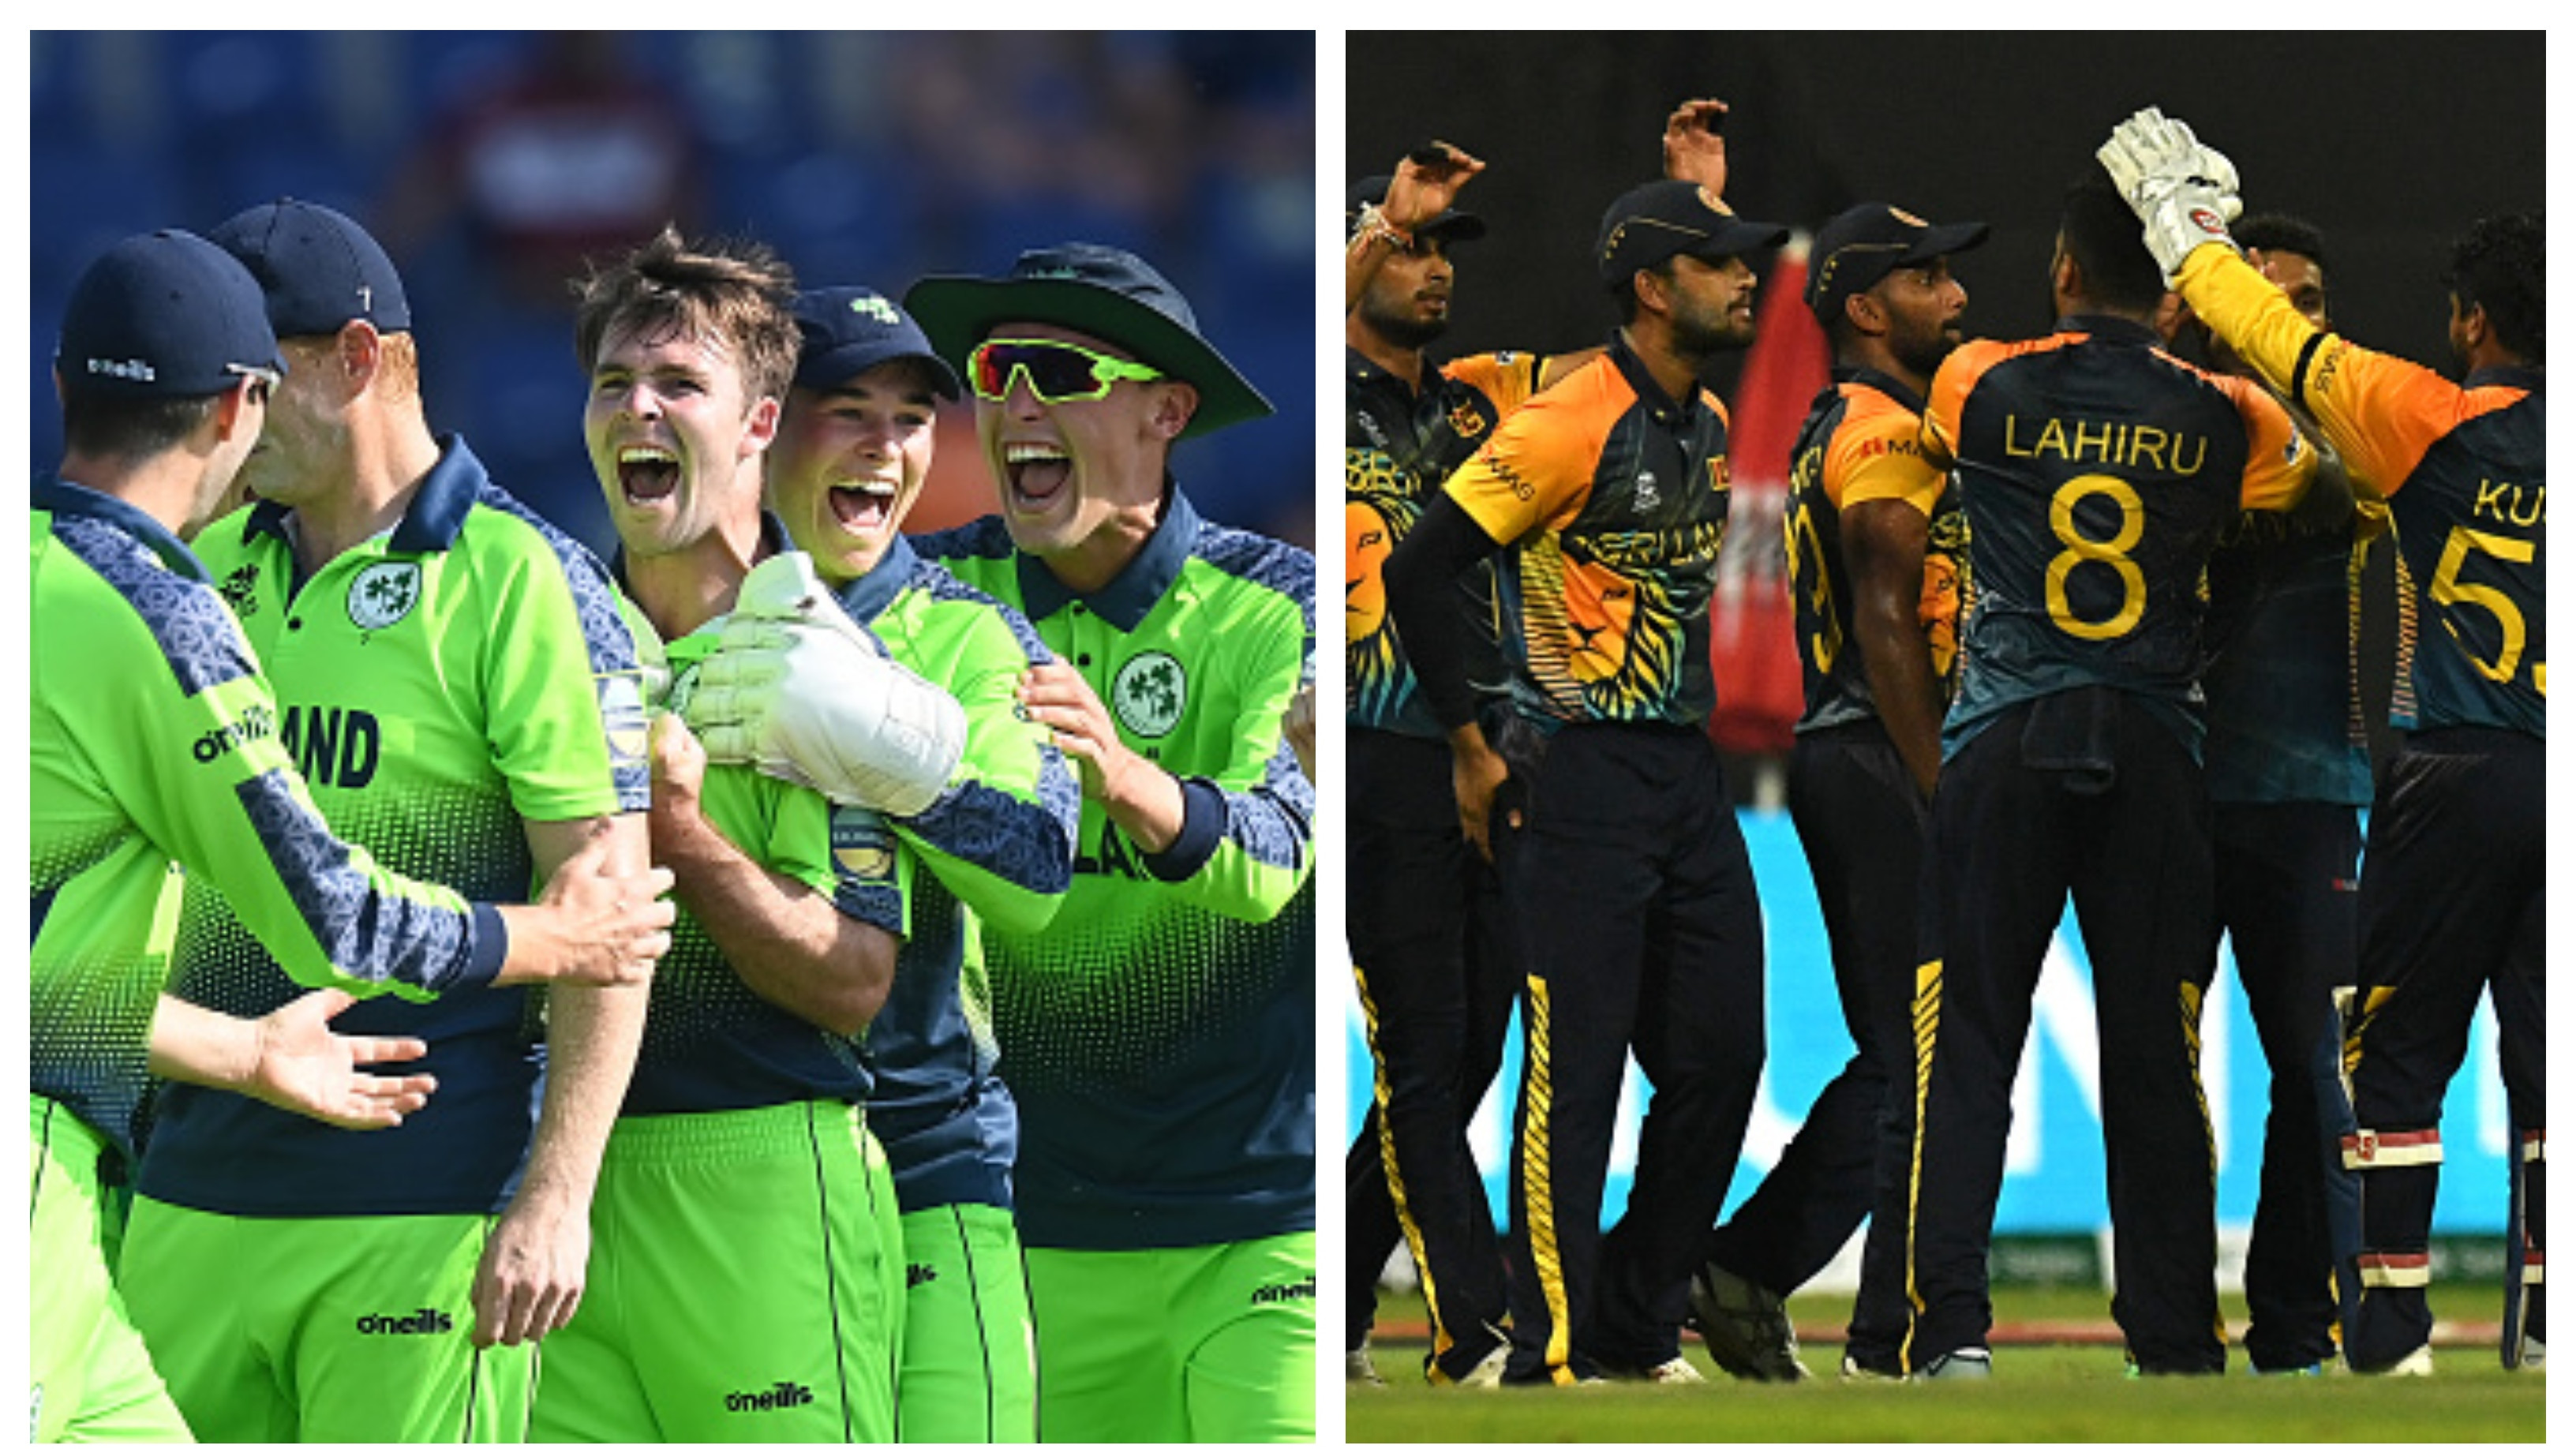 T20 World Cup 2021: Ireland outplayed Netherlands to register 7-wicket win; Sri Lanka crushed Namibia by same margin